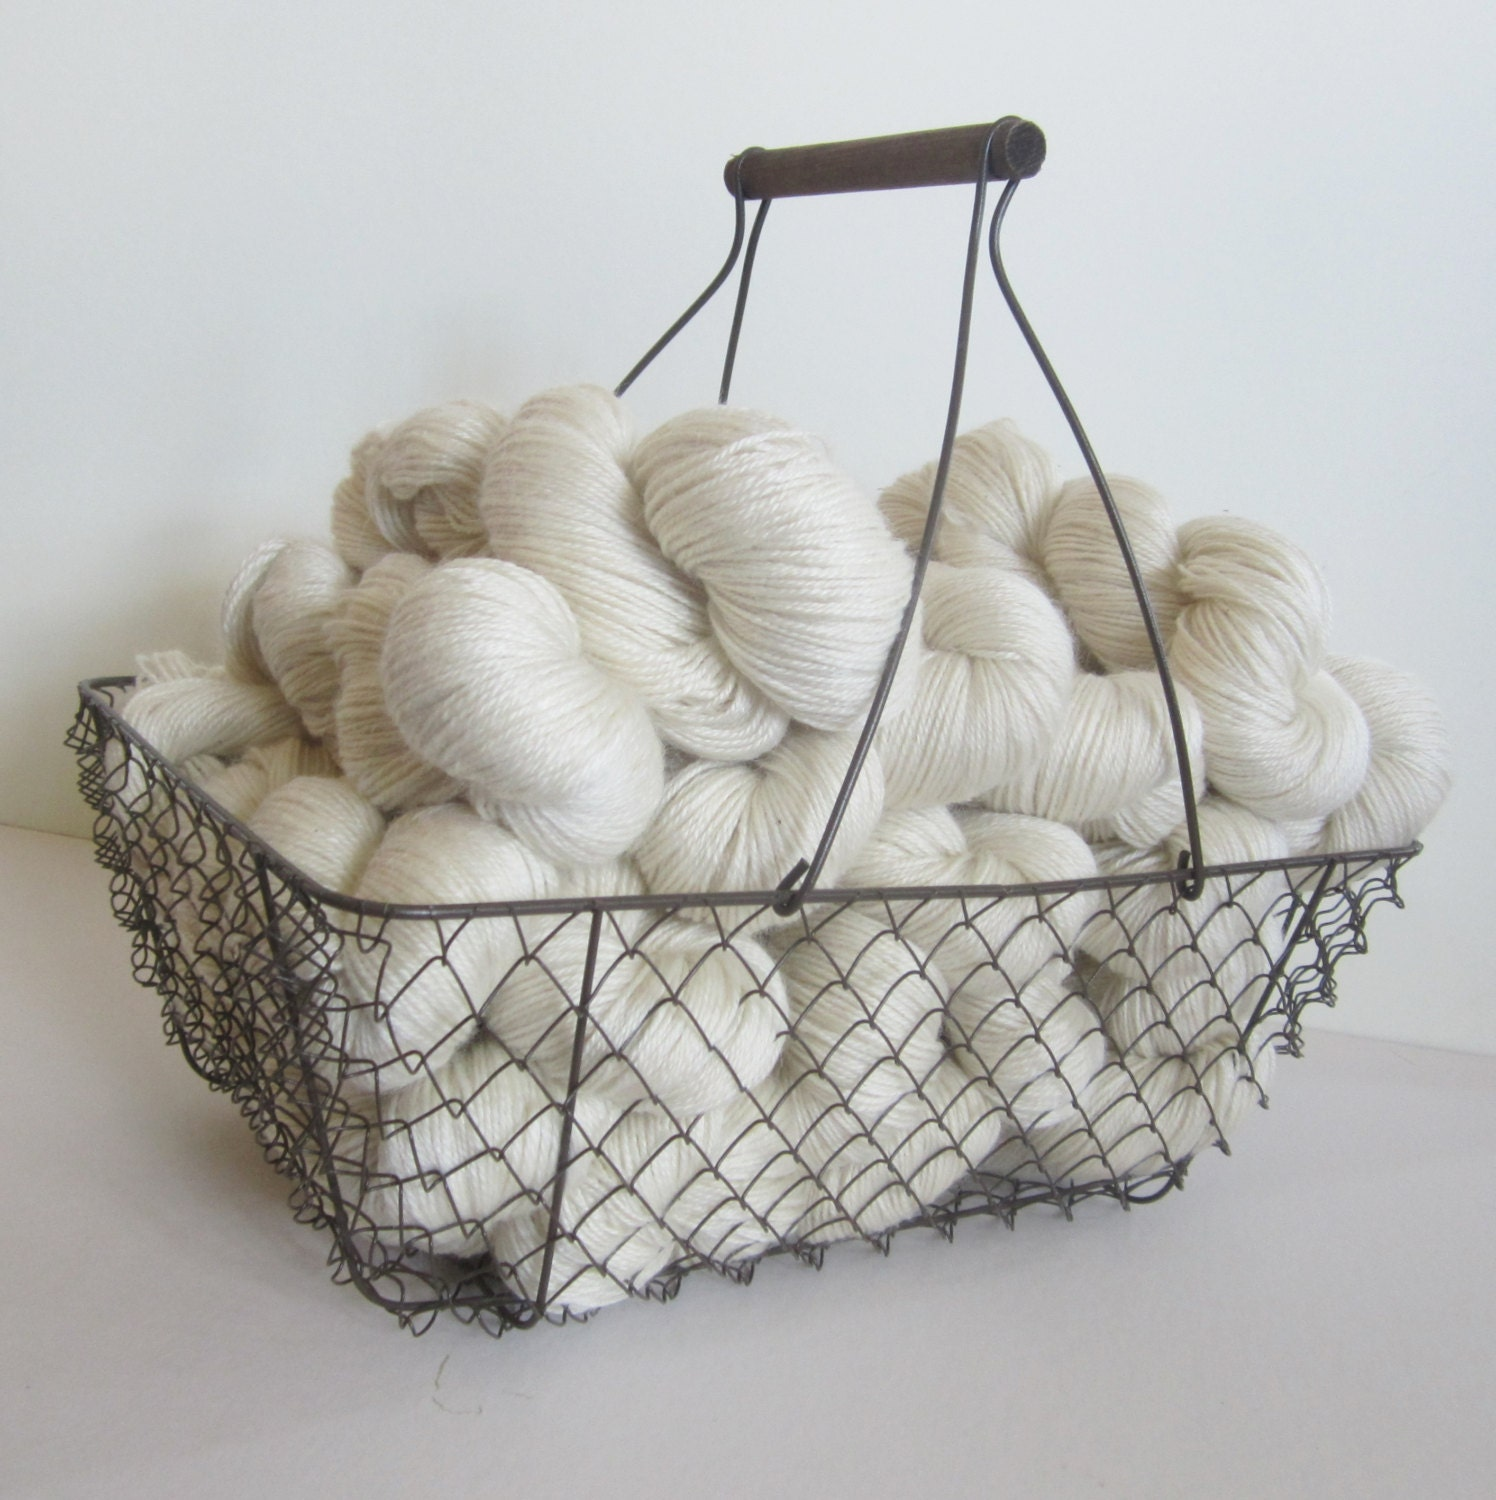 NATURAL 80/20 Pygora/Merino sport weight yarn - white/cream - PurpleDesignStudio